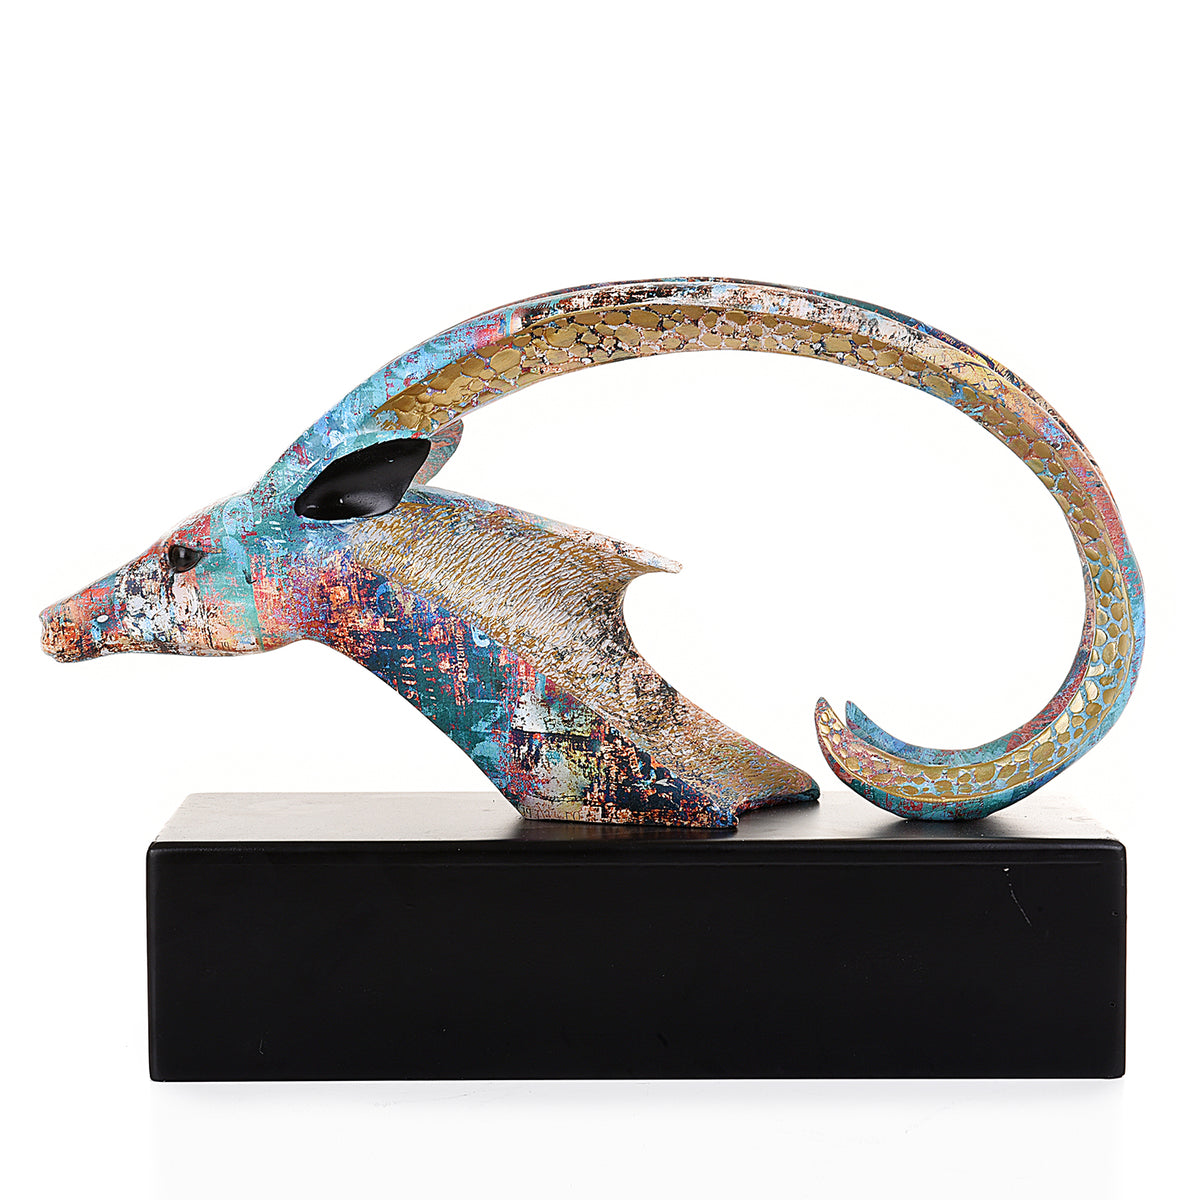 Van Howd Markhor Multi-Color Sculpture